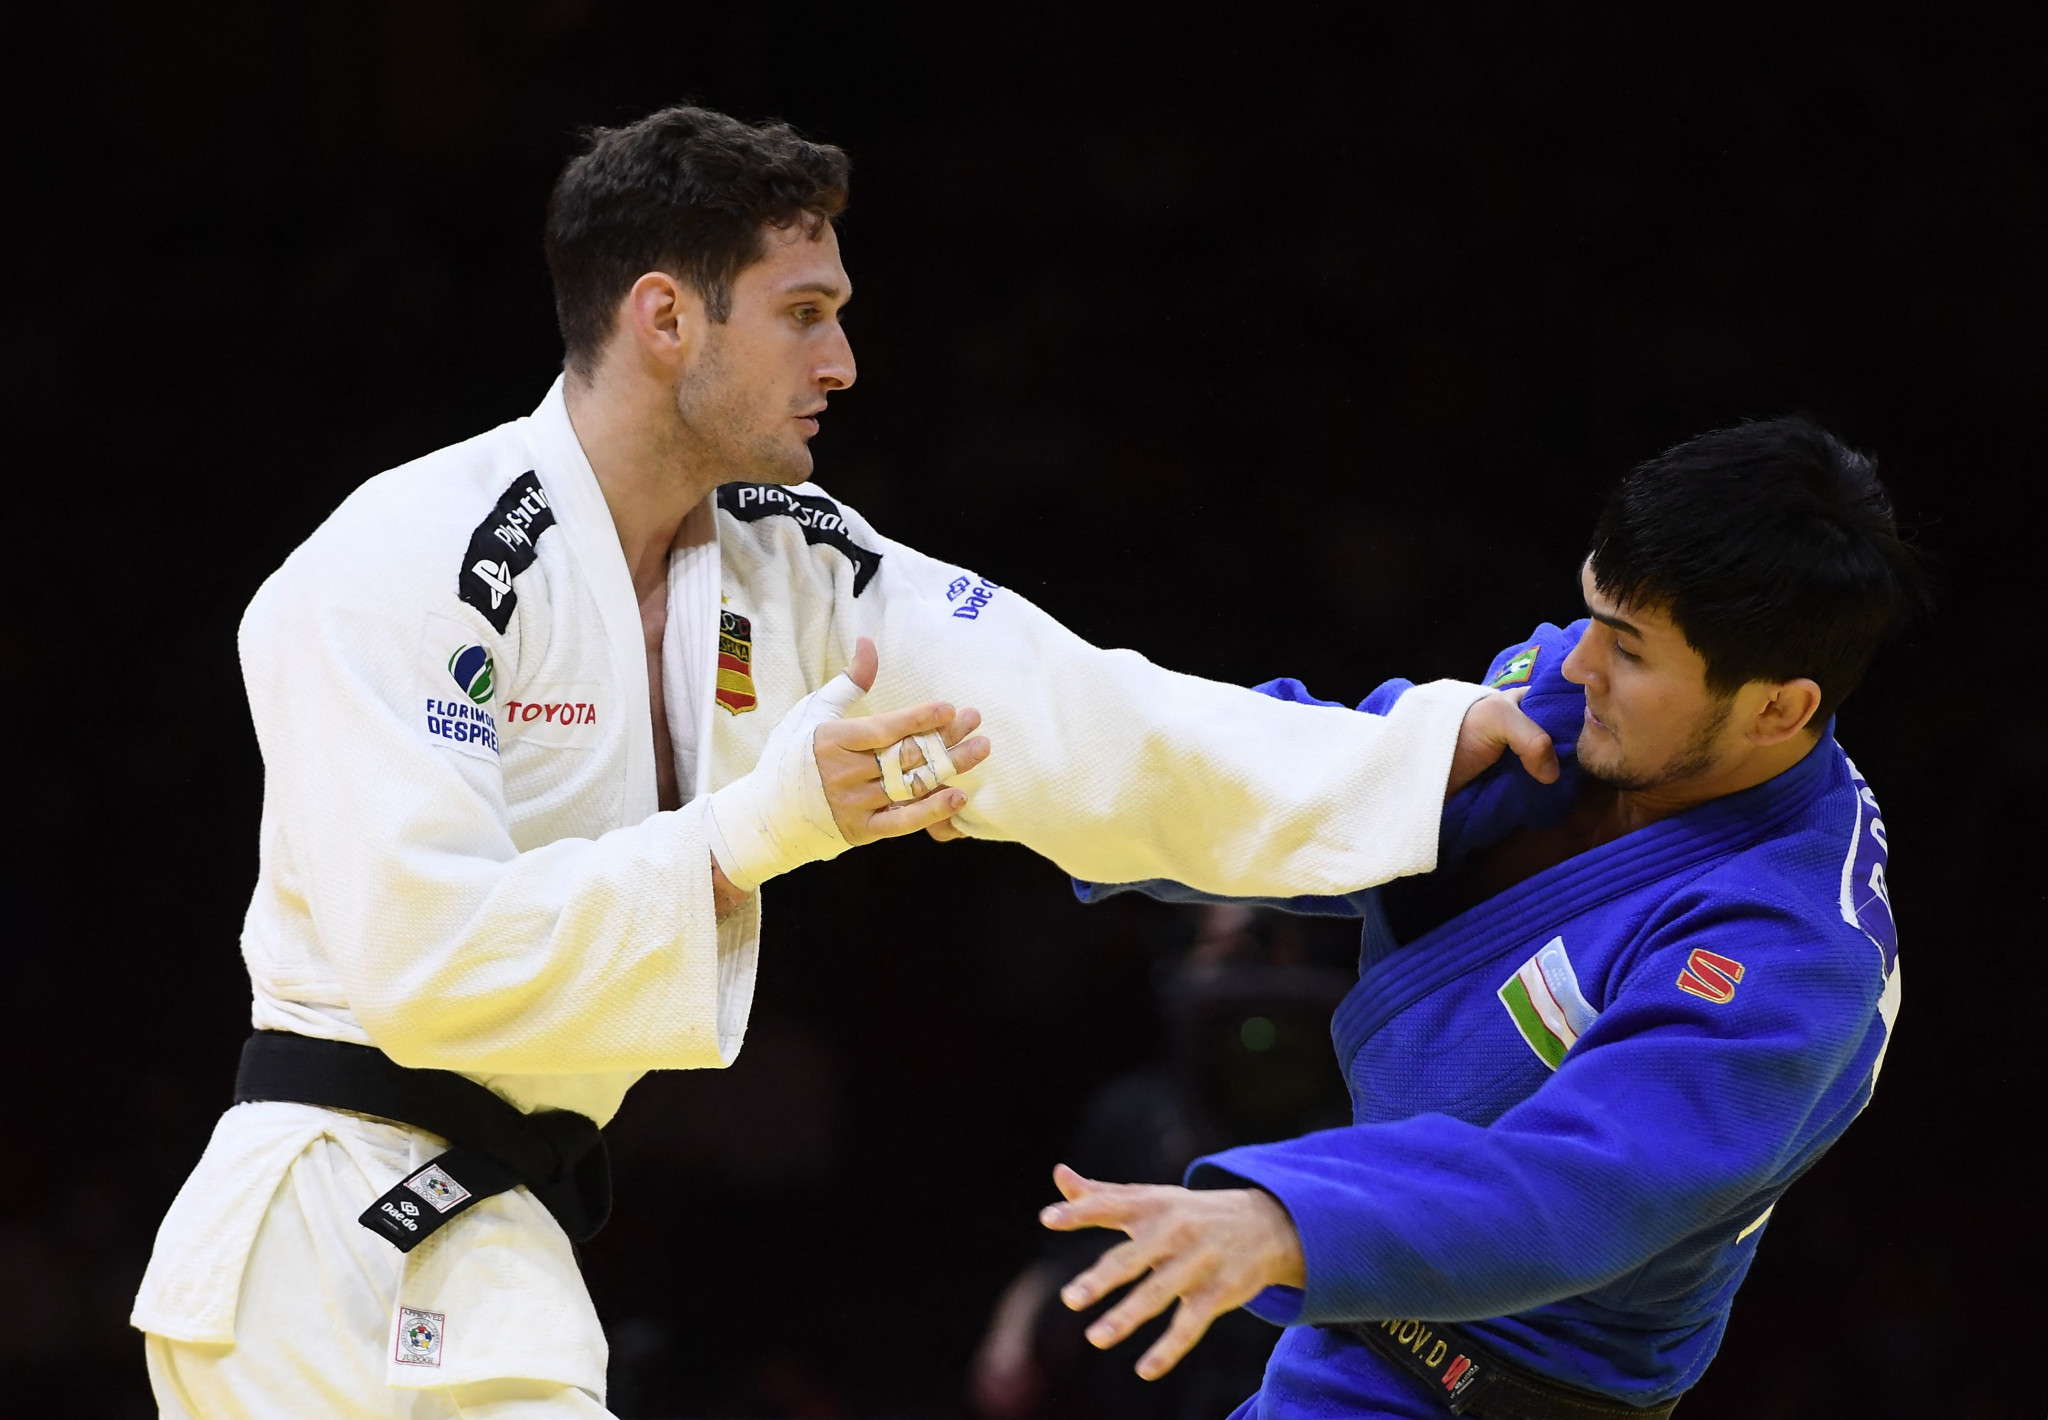 IJF World Championships: Day five of competition